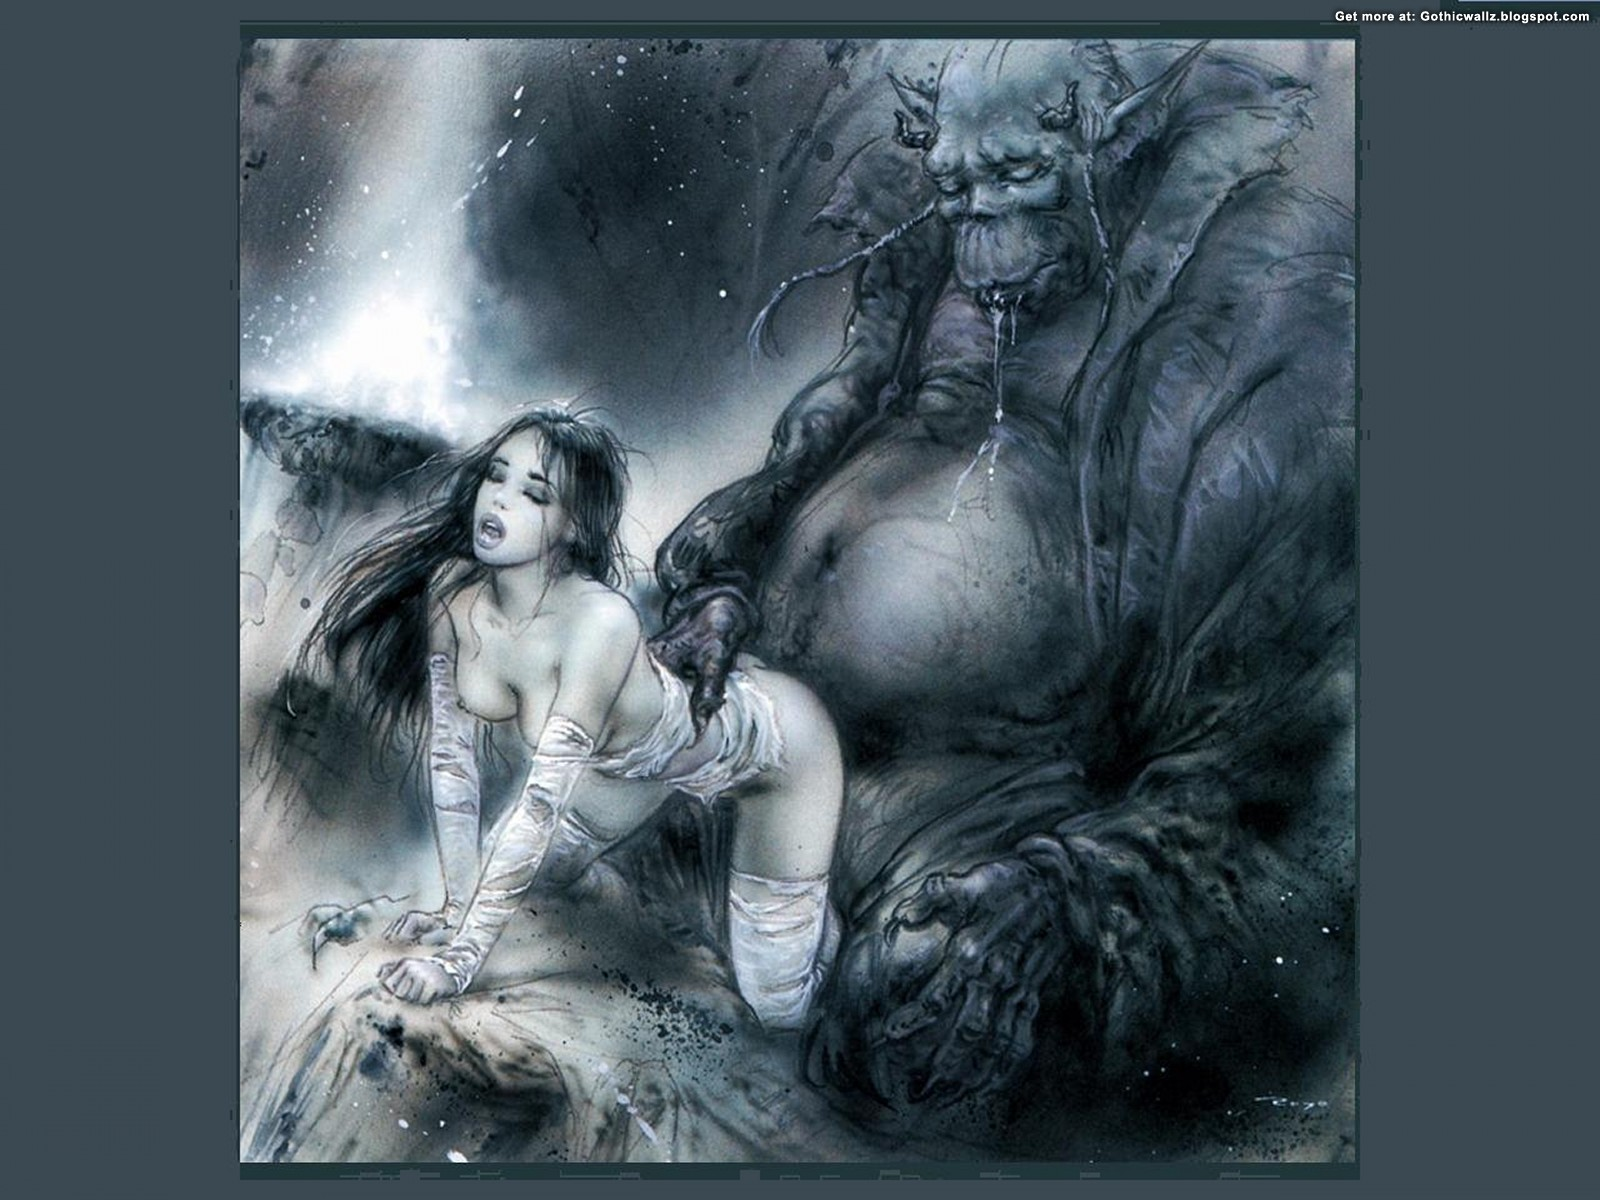 Monster Fantasy | Gothic Wallpaper Download